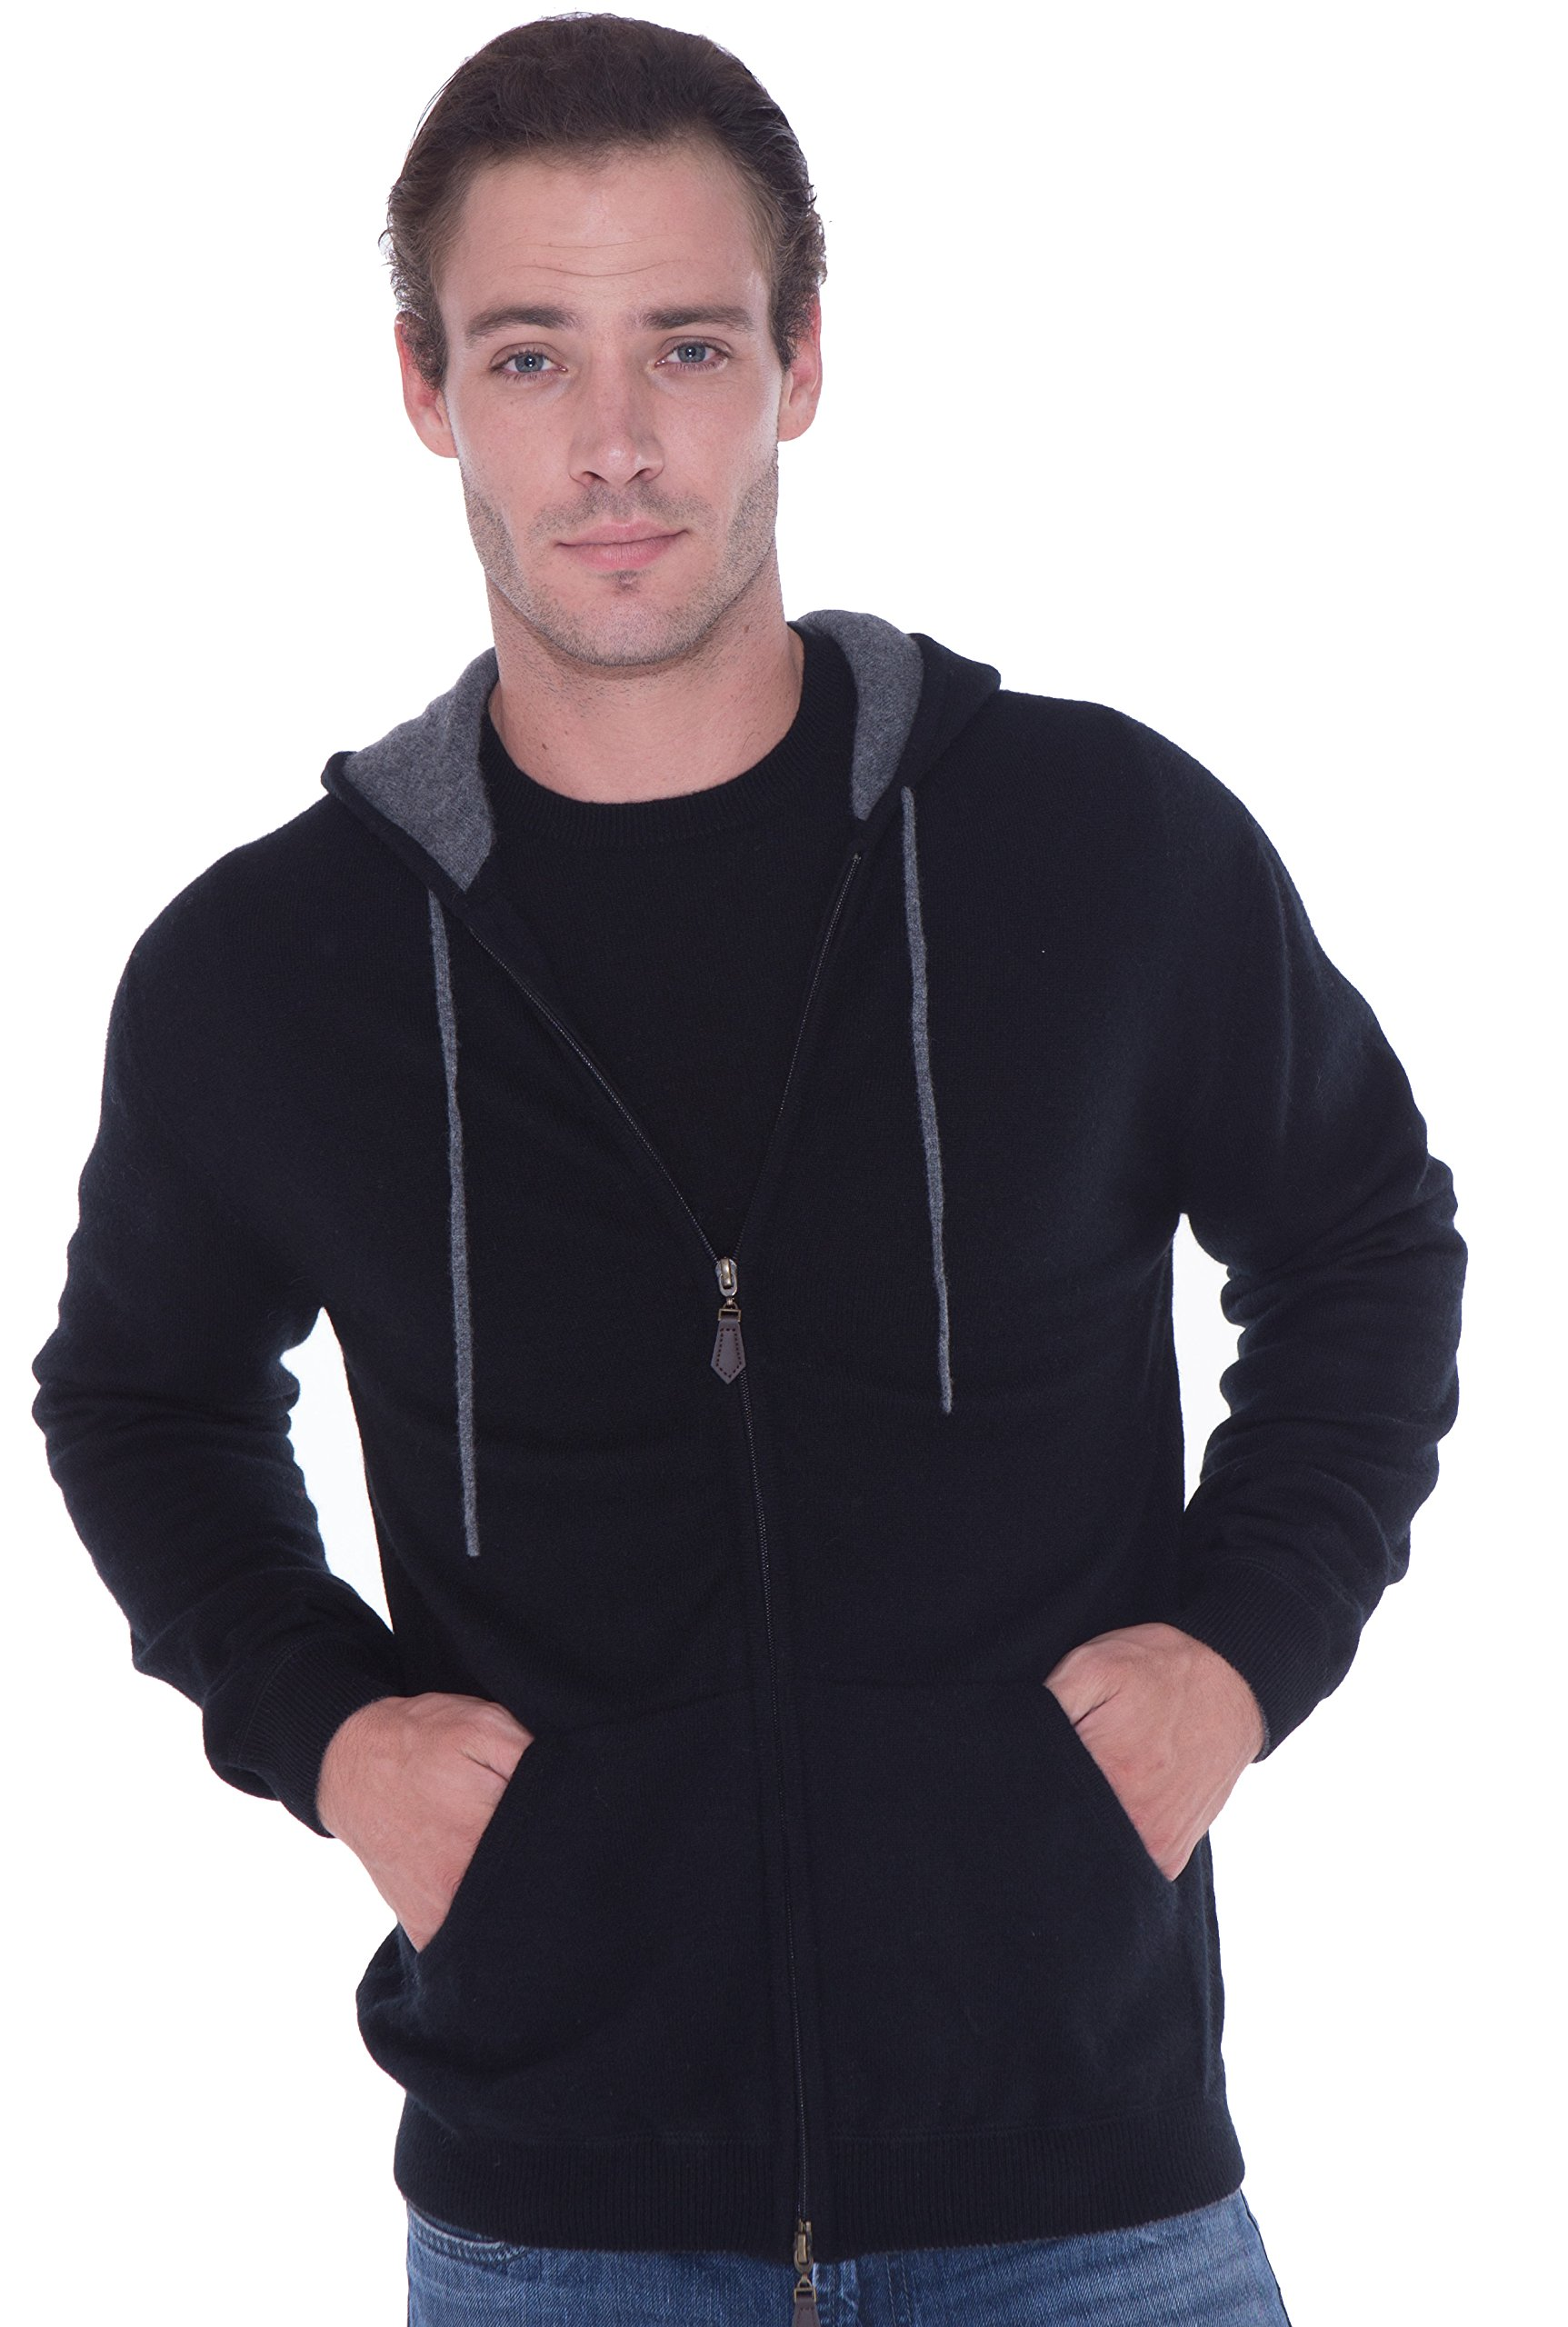 LEBAC 100% Cashmere Sweater Zip Up Hoodie With Double Layer Hood For Men by